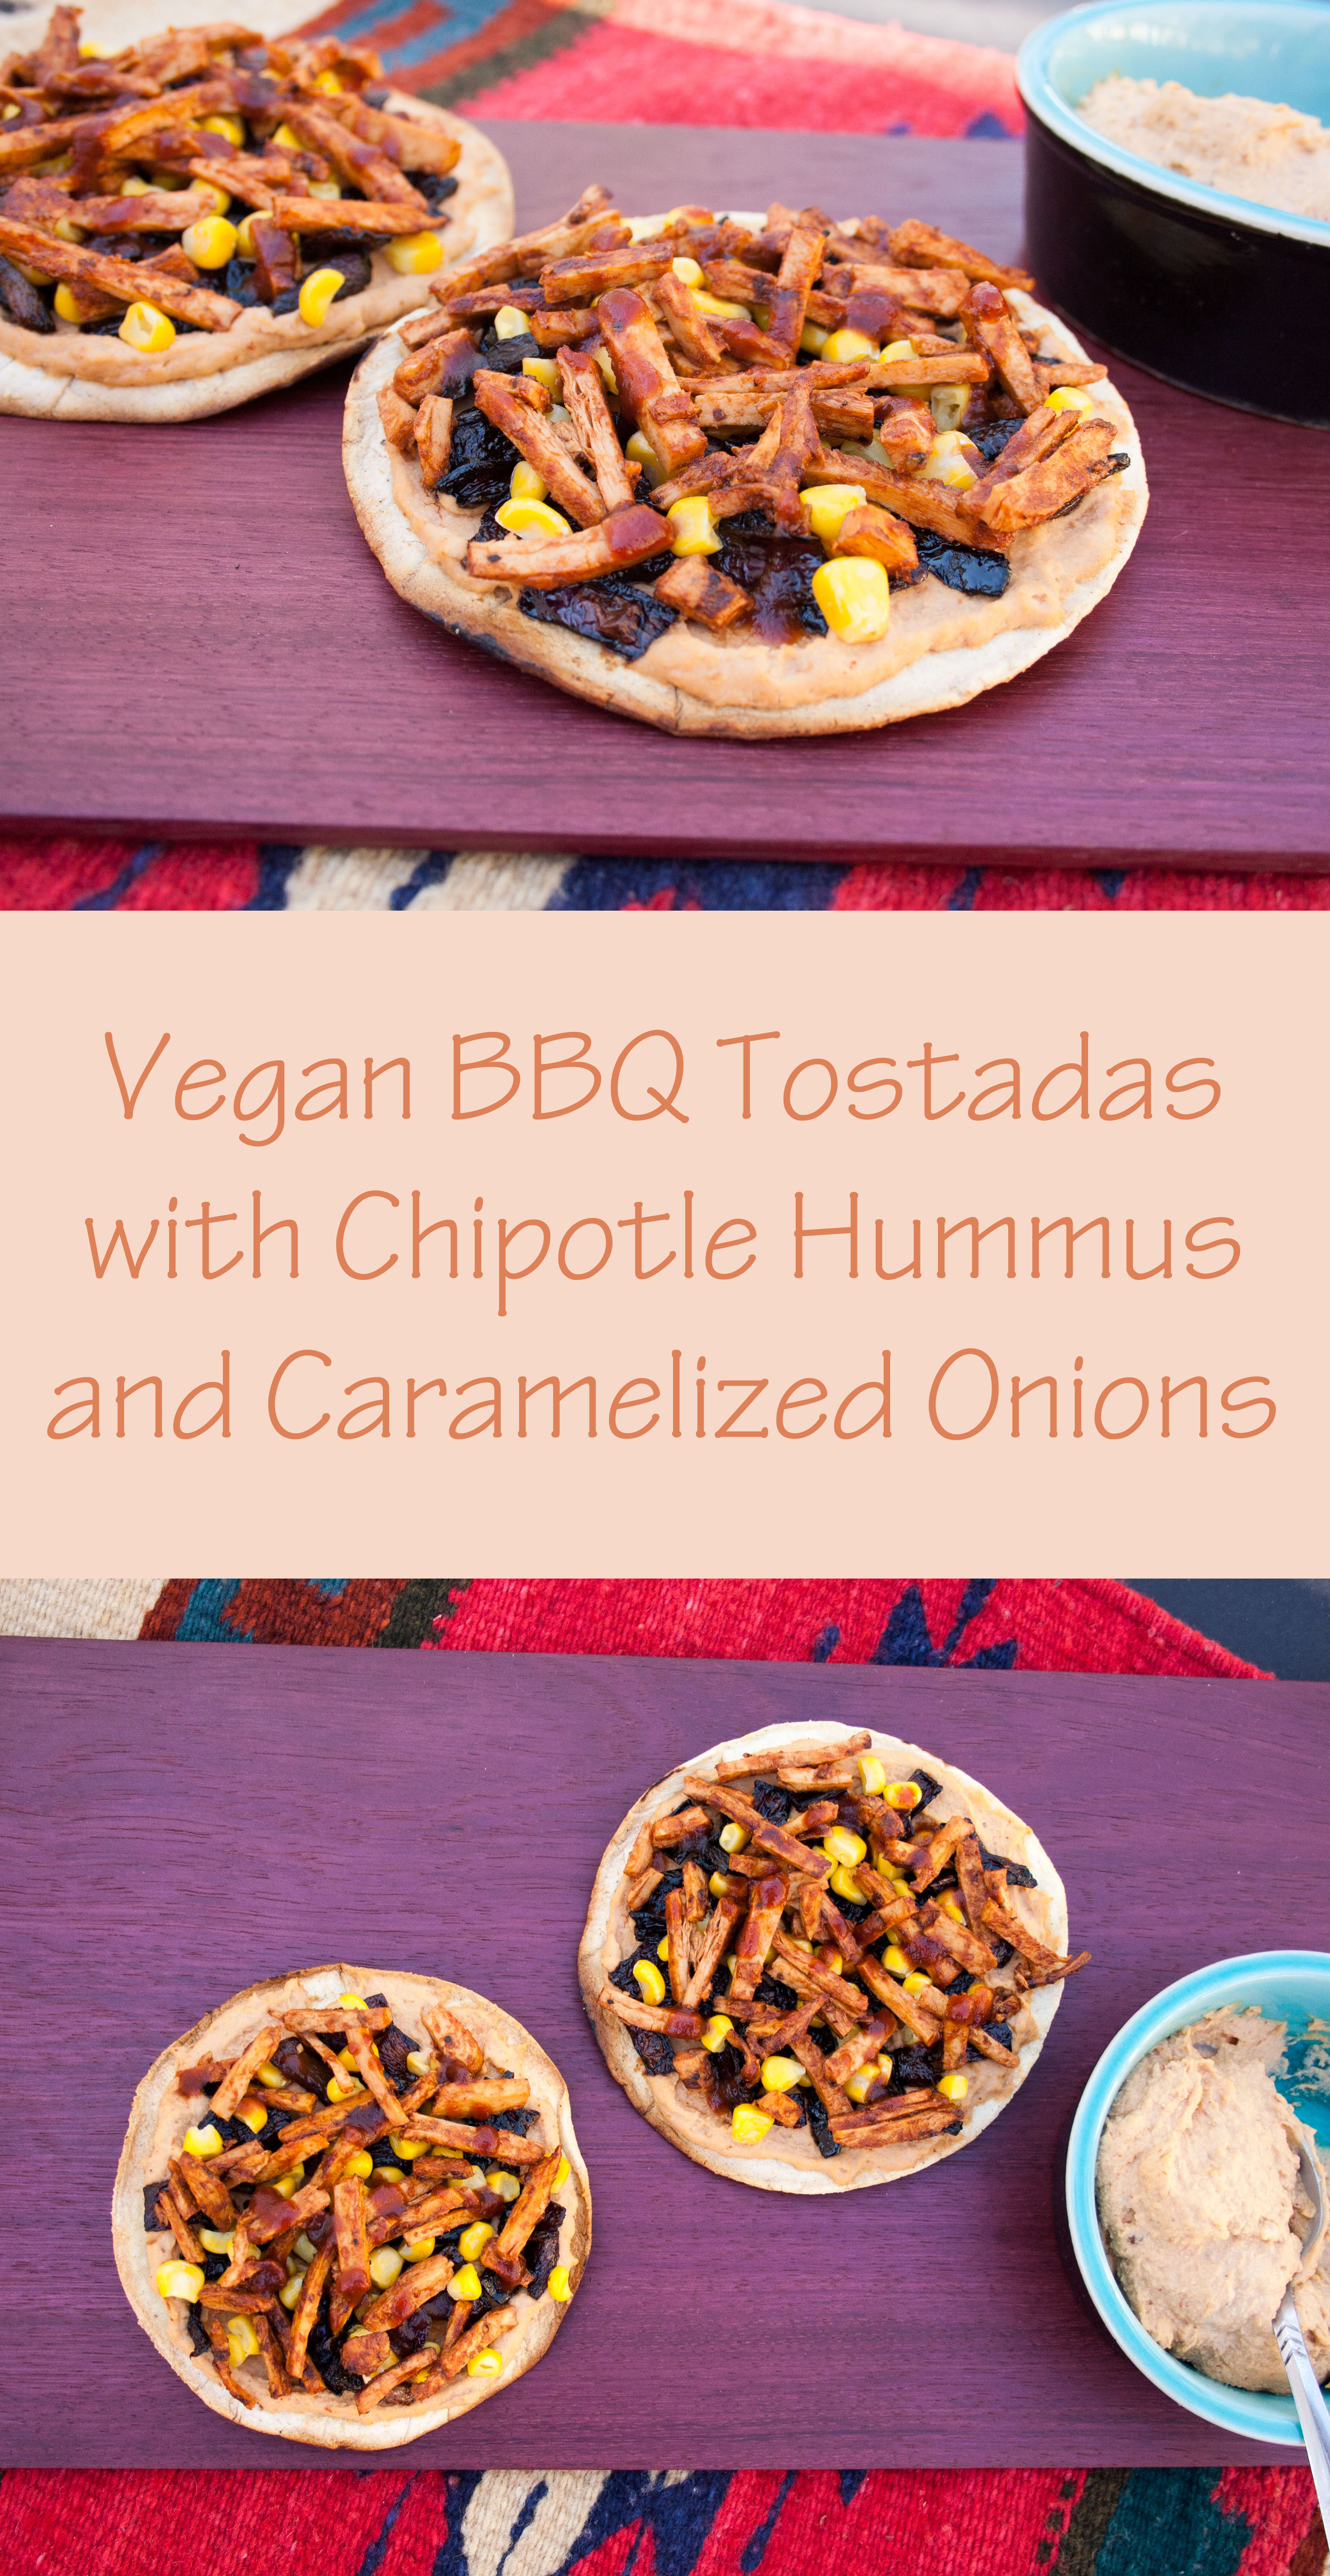 Vegan BBQ Tostadas with Chipotle Hummus and Caramelized Onions collage photo with text.